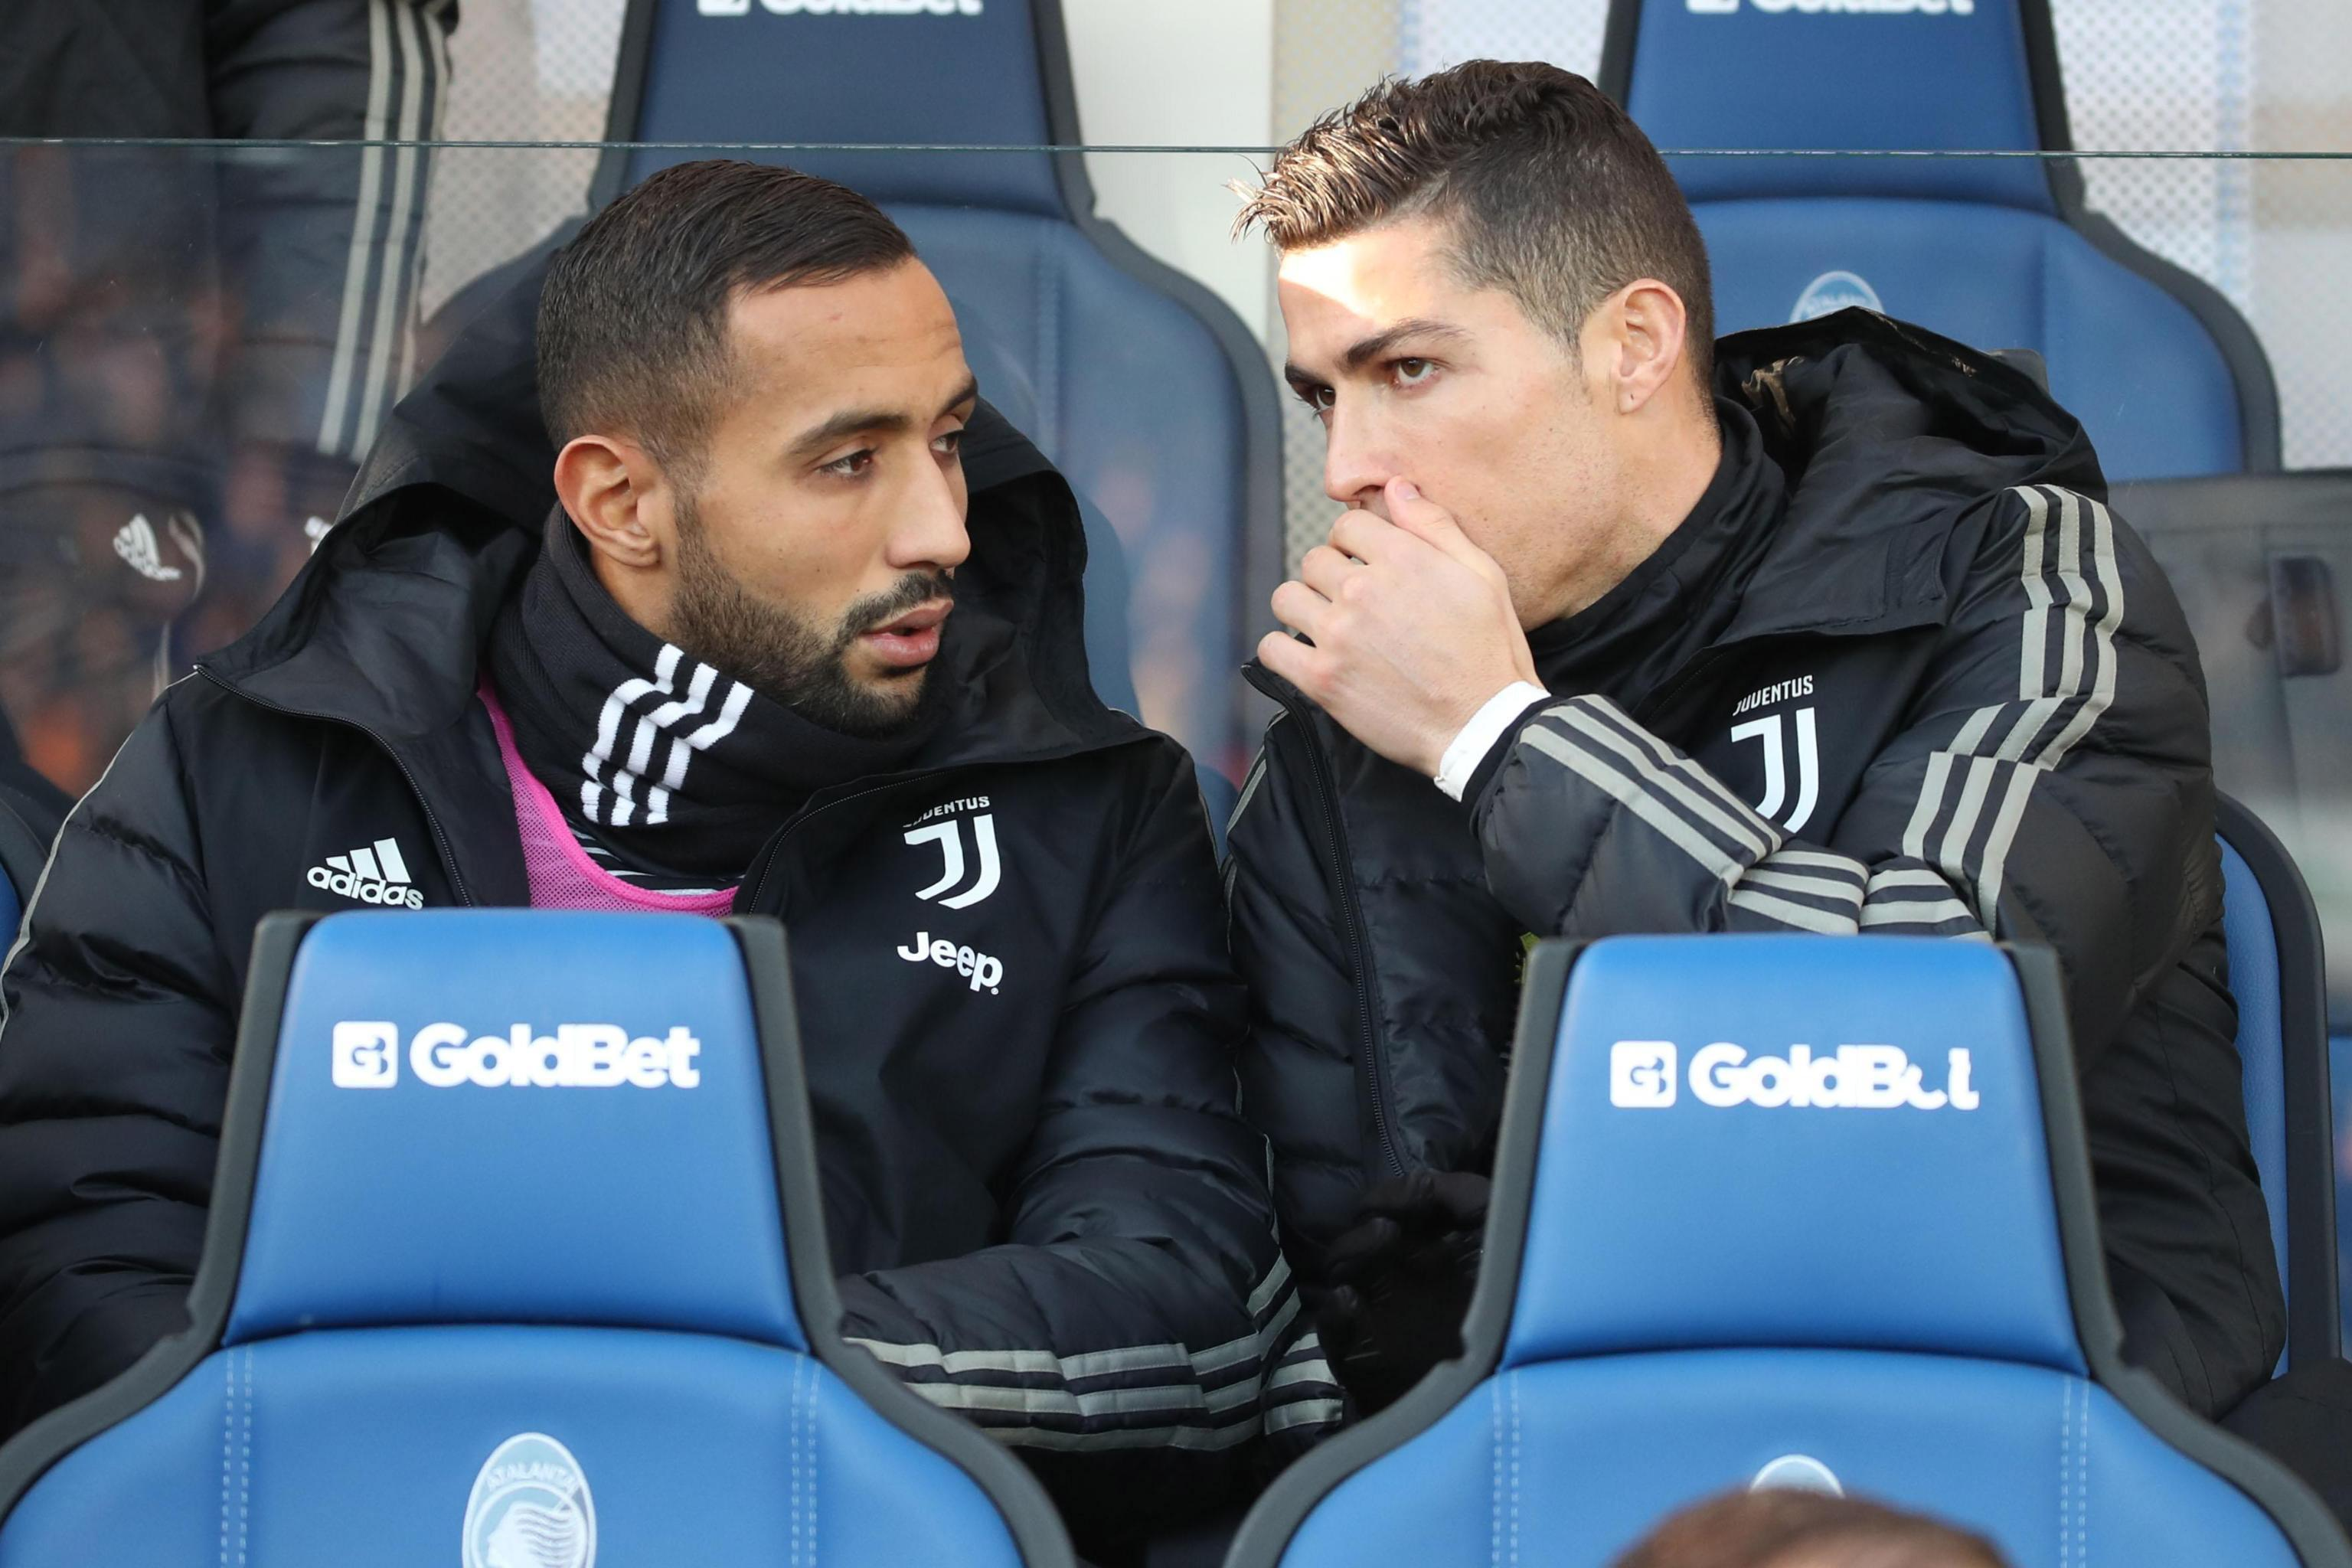 Medhi Benatia has spent most of this season on the bench at Juventus